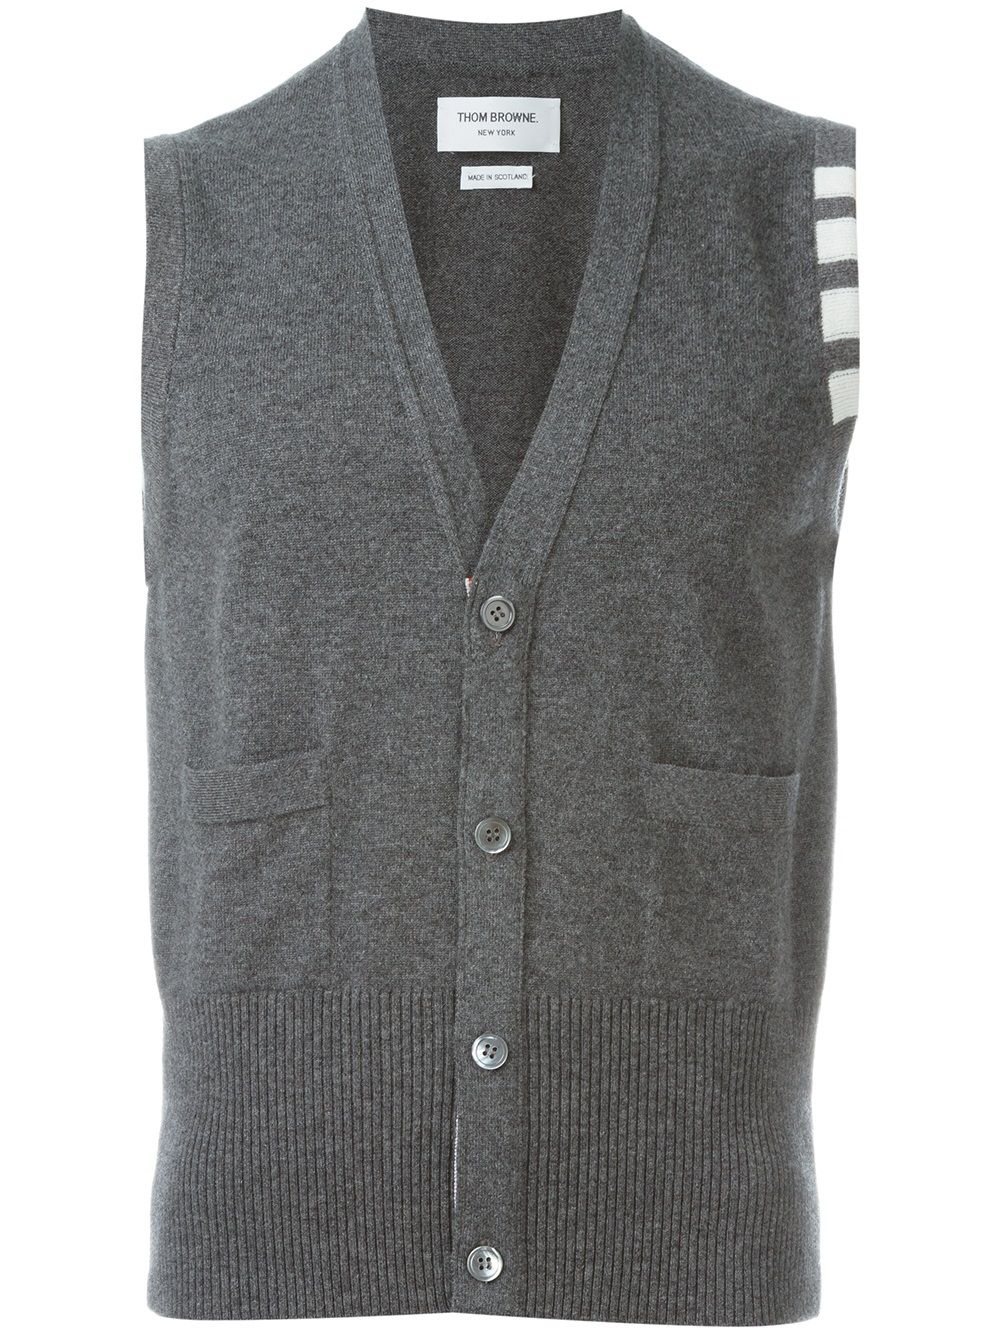 Thom Browne sleeveless buttoned cardigan - Grey von Thom Browne